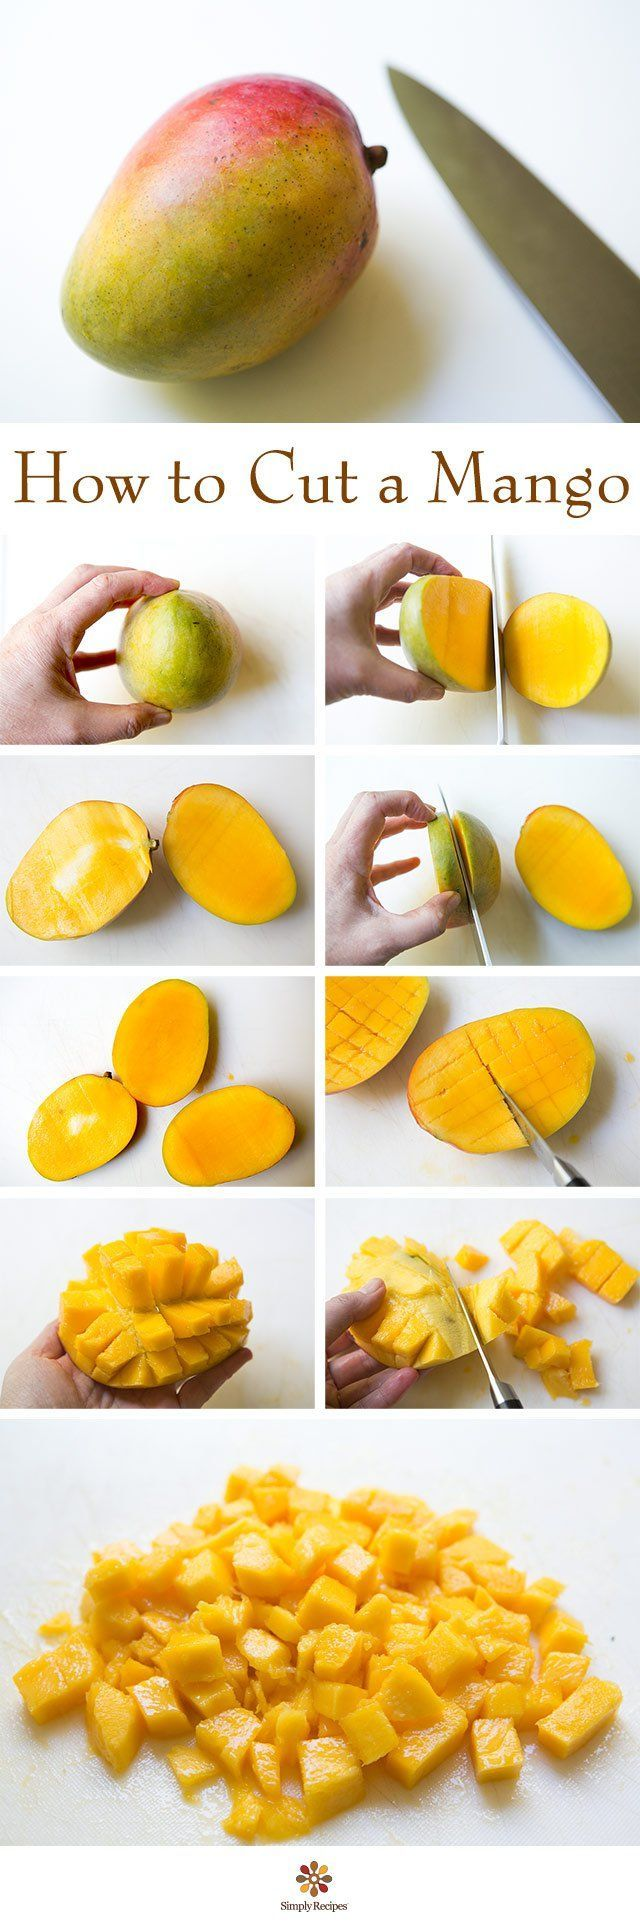 Cutting A Mango Is Easy! Here Are Stepbystep Instructions On How